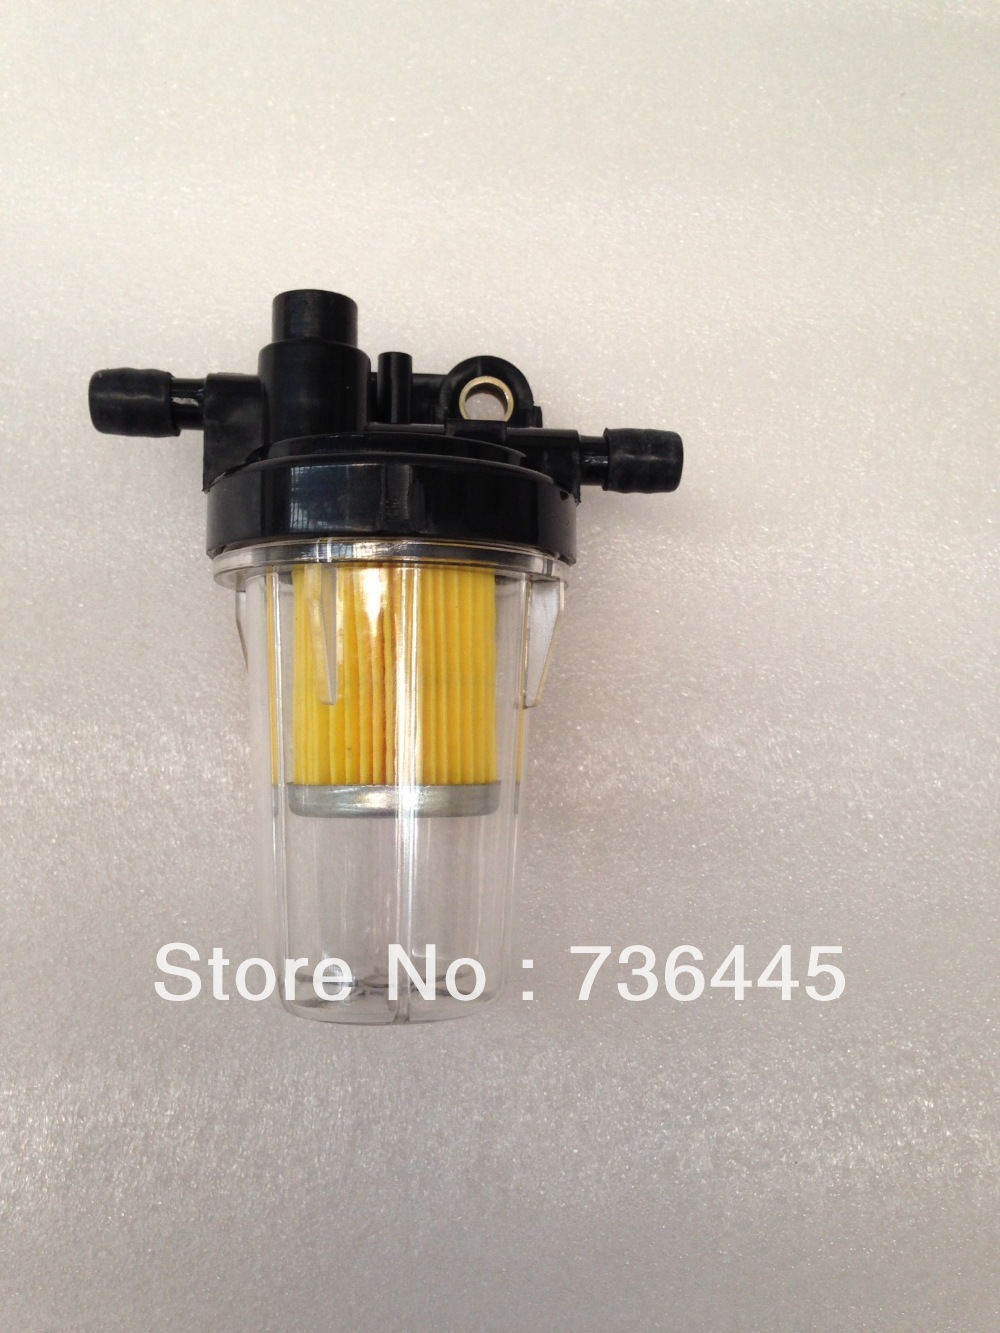 medium resolution of df tractor parts dongfeng small diesel engine fuel filter for df204g3 3m78